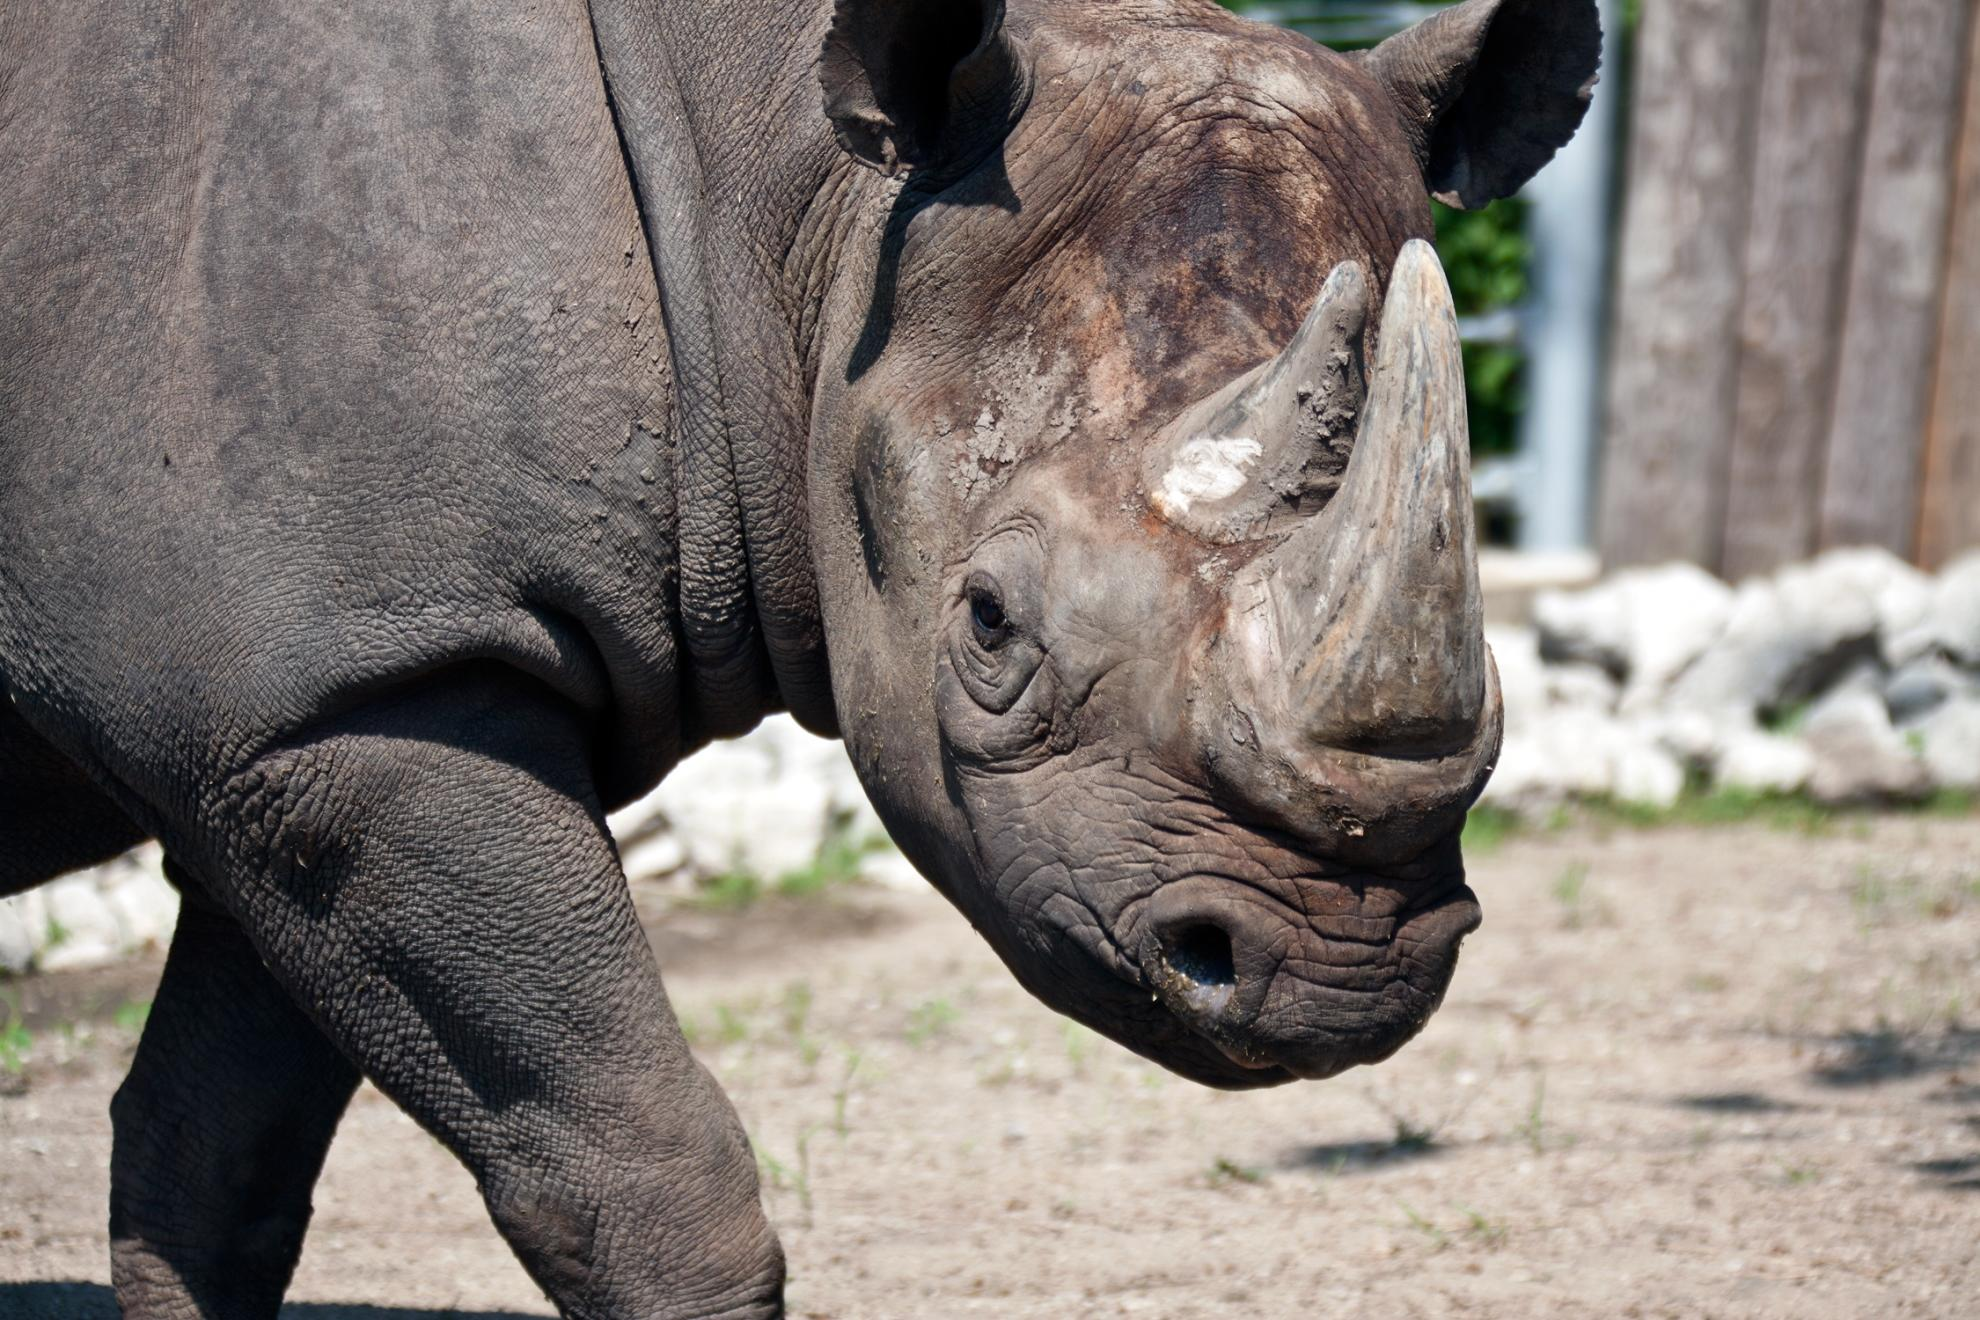 North Park Lincoln >> Critically Endangered Black Rhino Celebrates Milestone at Lincoln Park Zoo | Chicago Tonight | WTTW